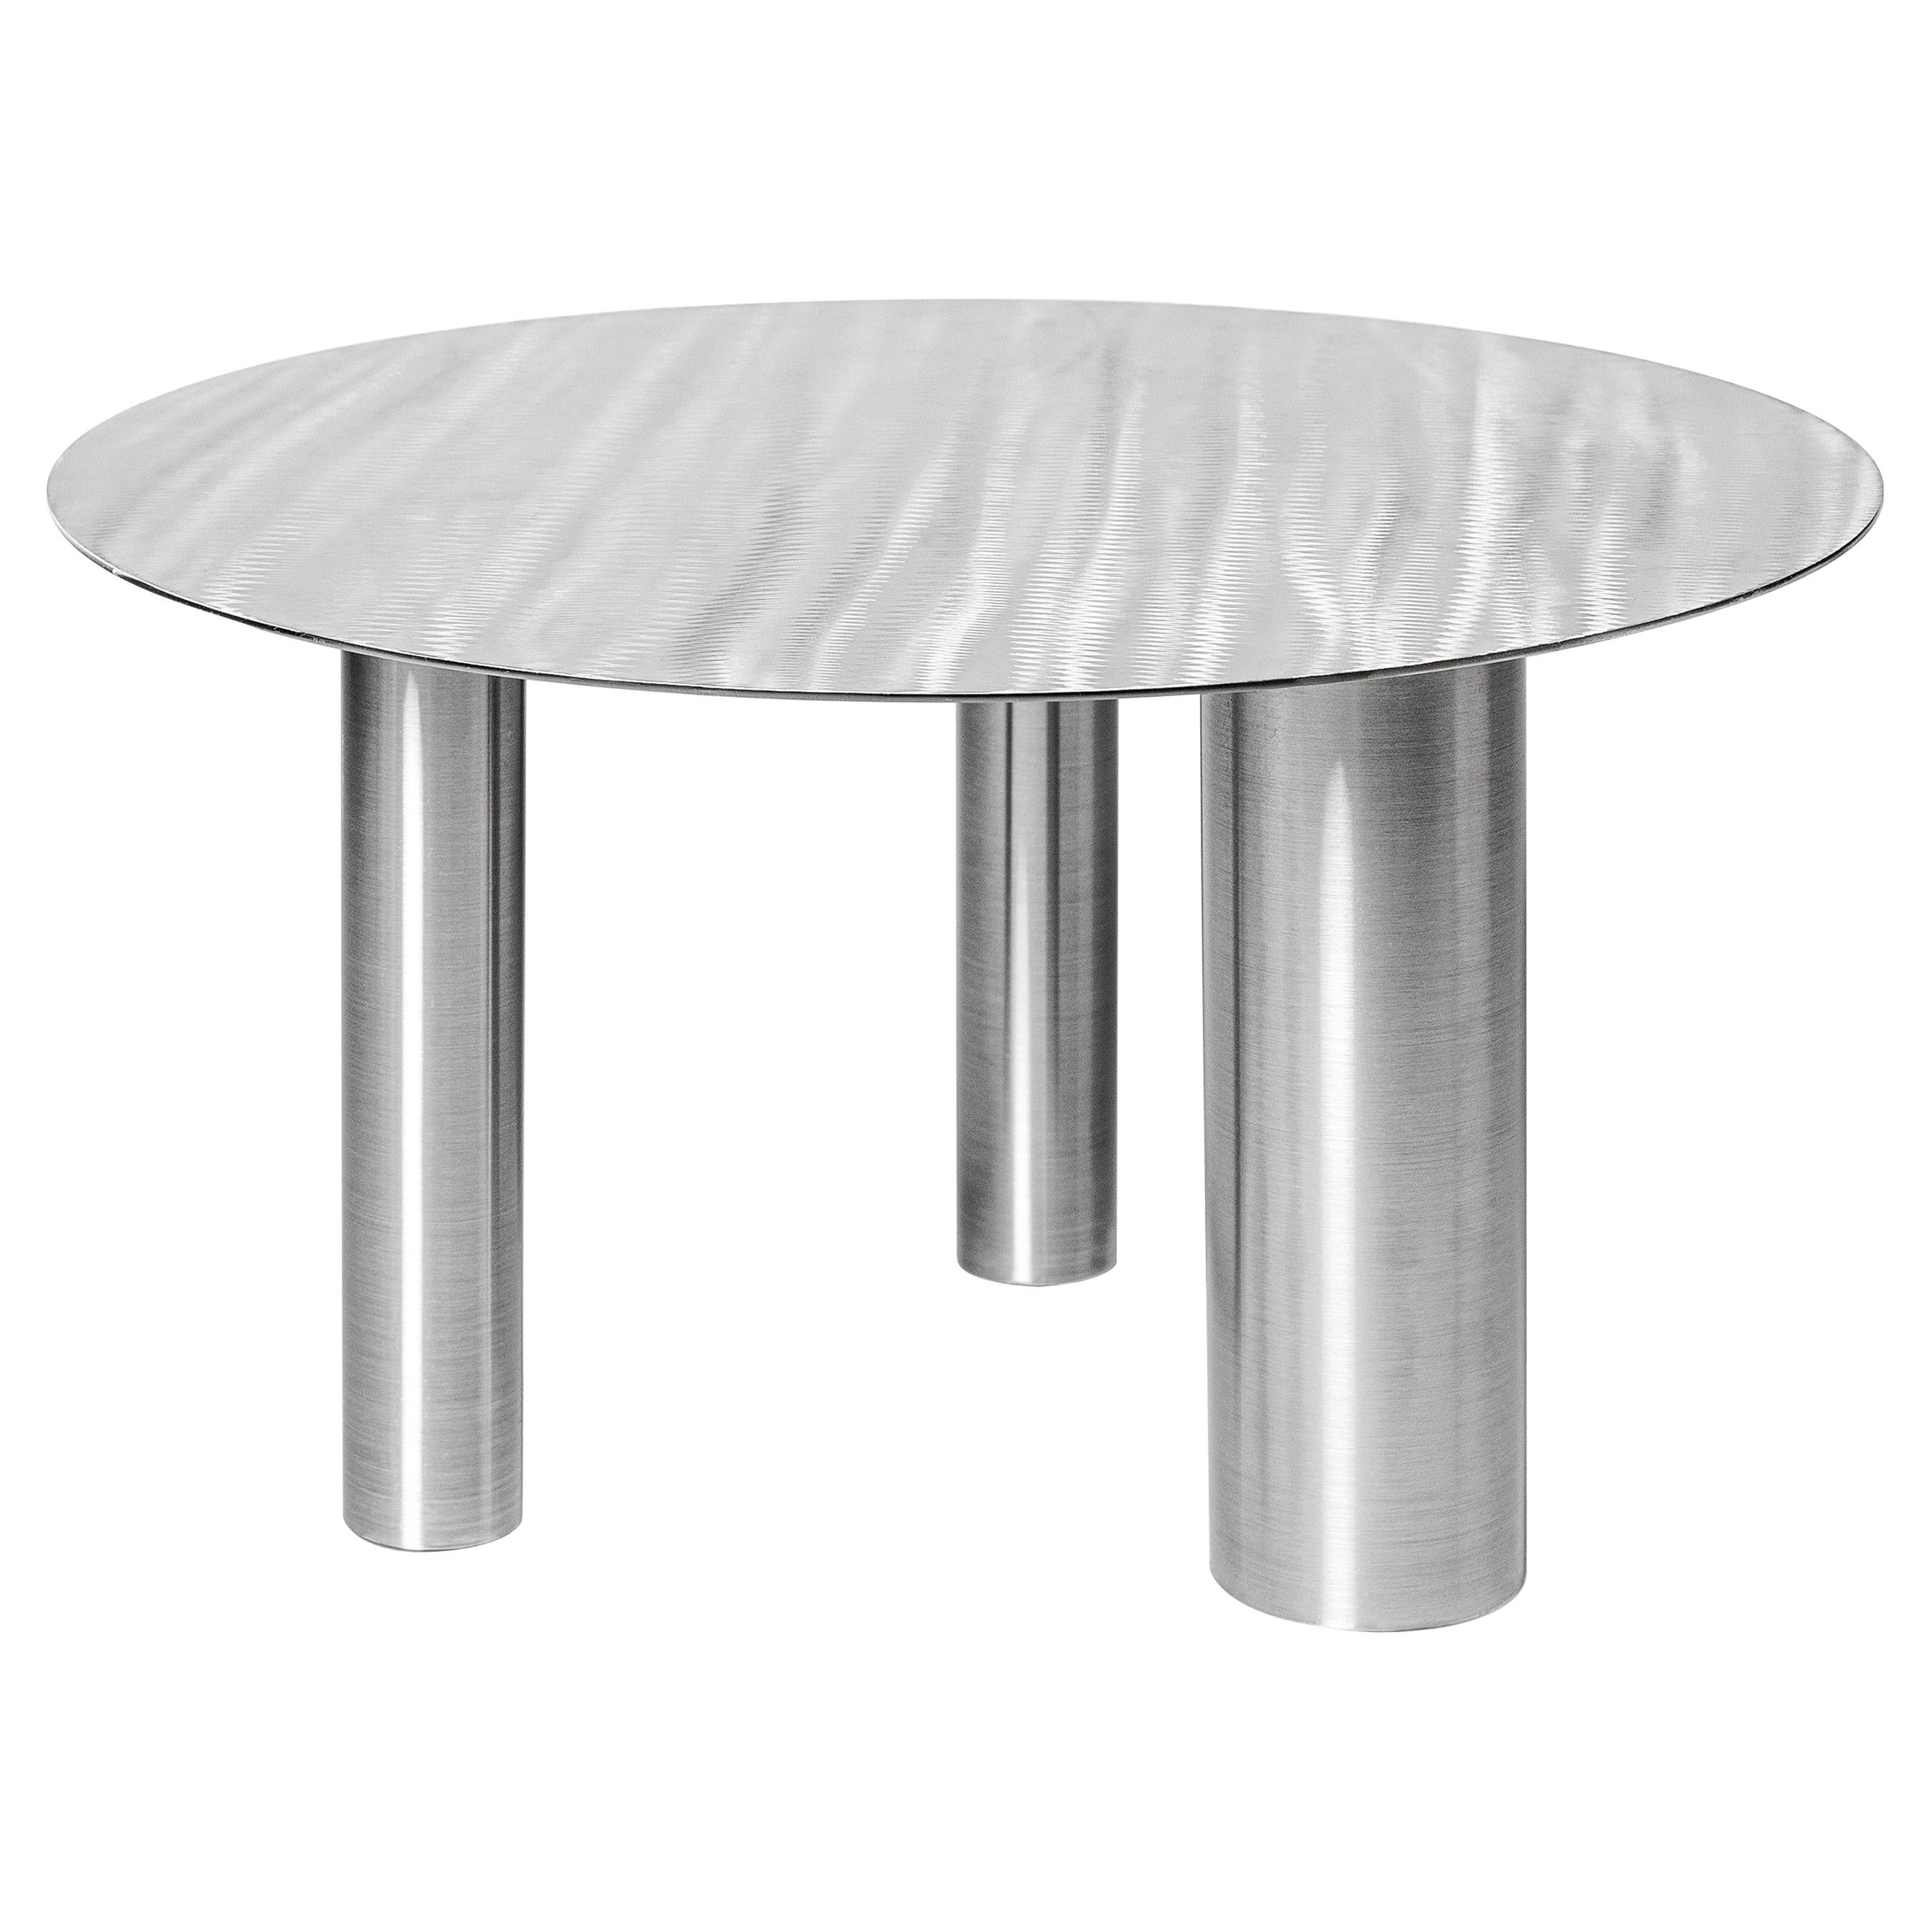 Low Coffee Table Brandt CS1 by NOOM